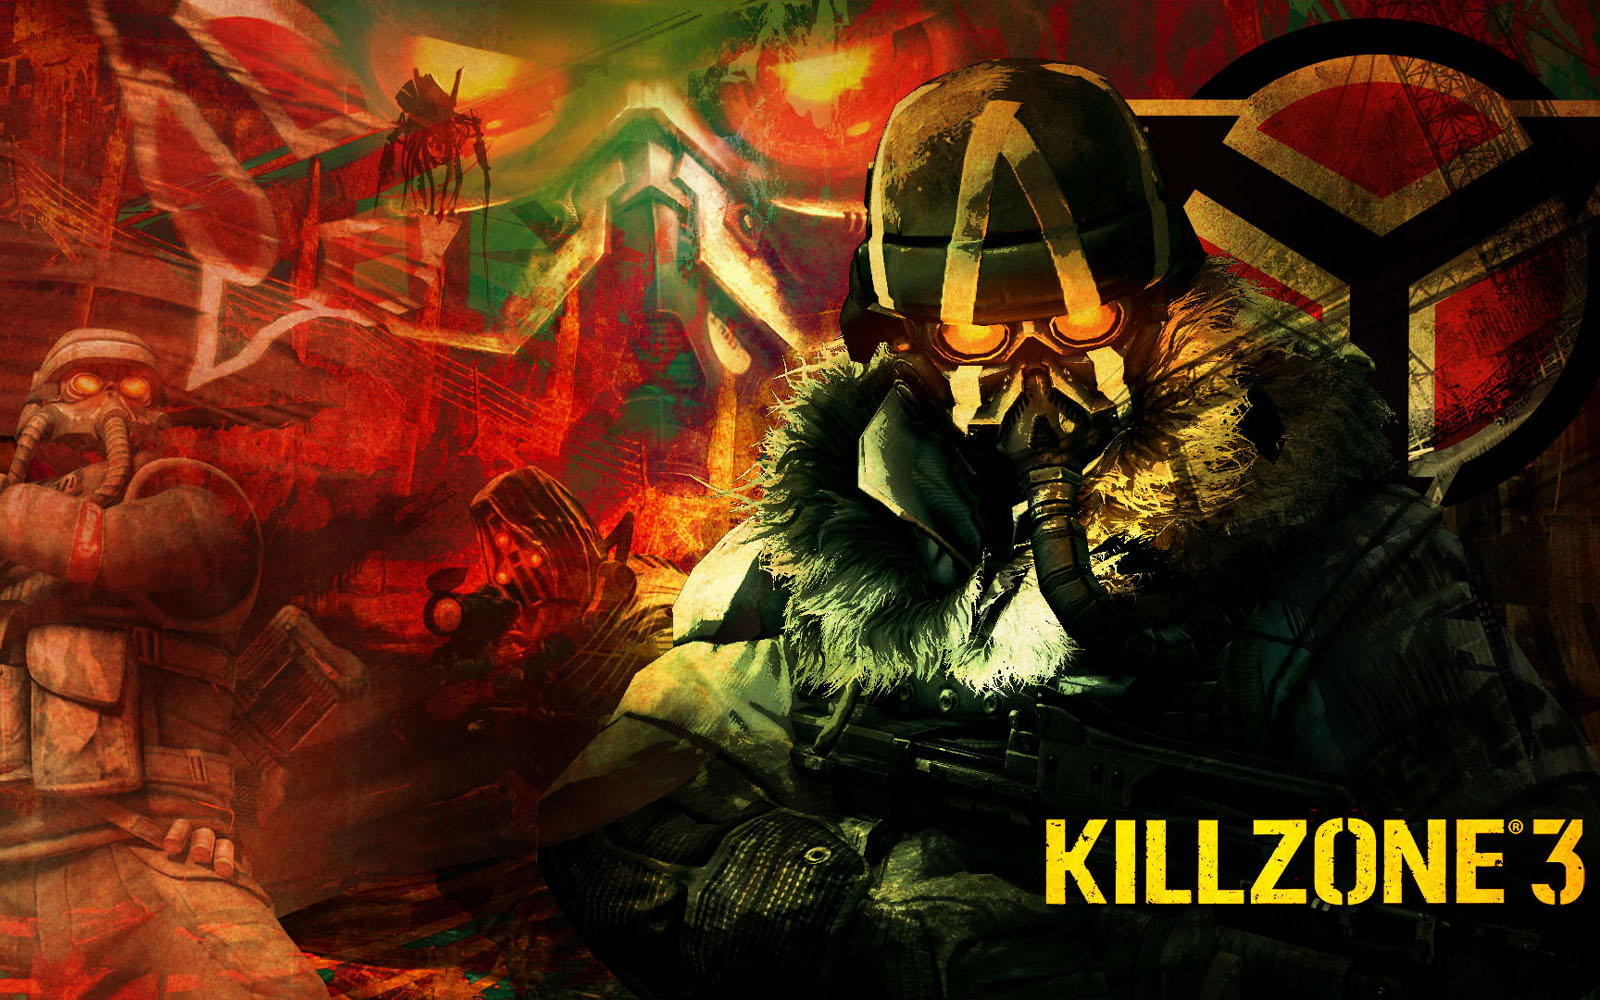 Cute Naughty Babies Hd Wallpapers Wallpapers Killzone 3 Game Wallpapers